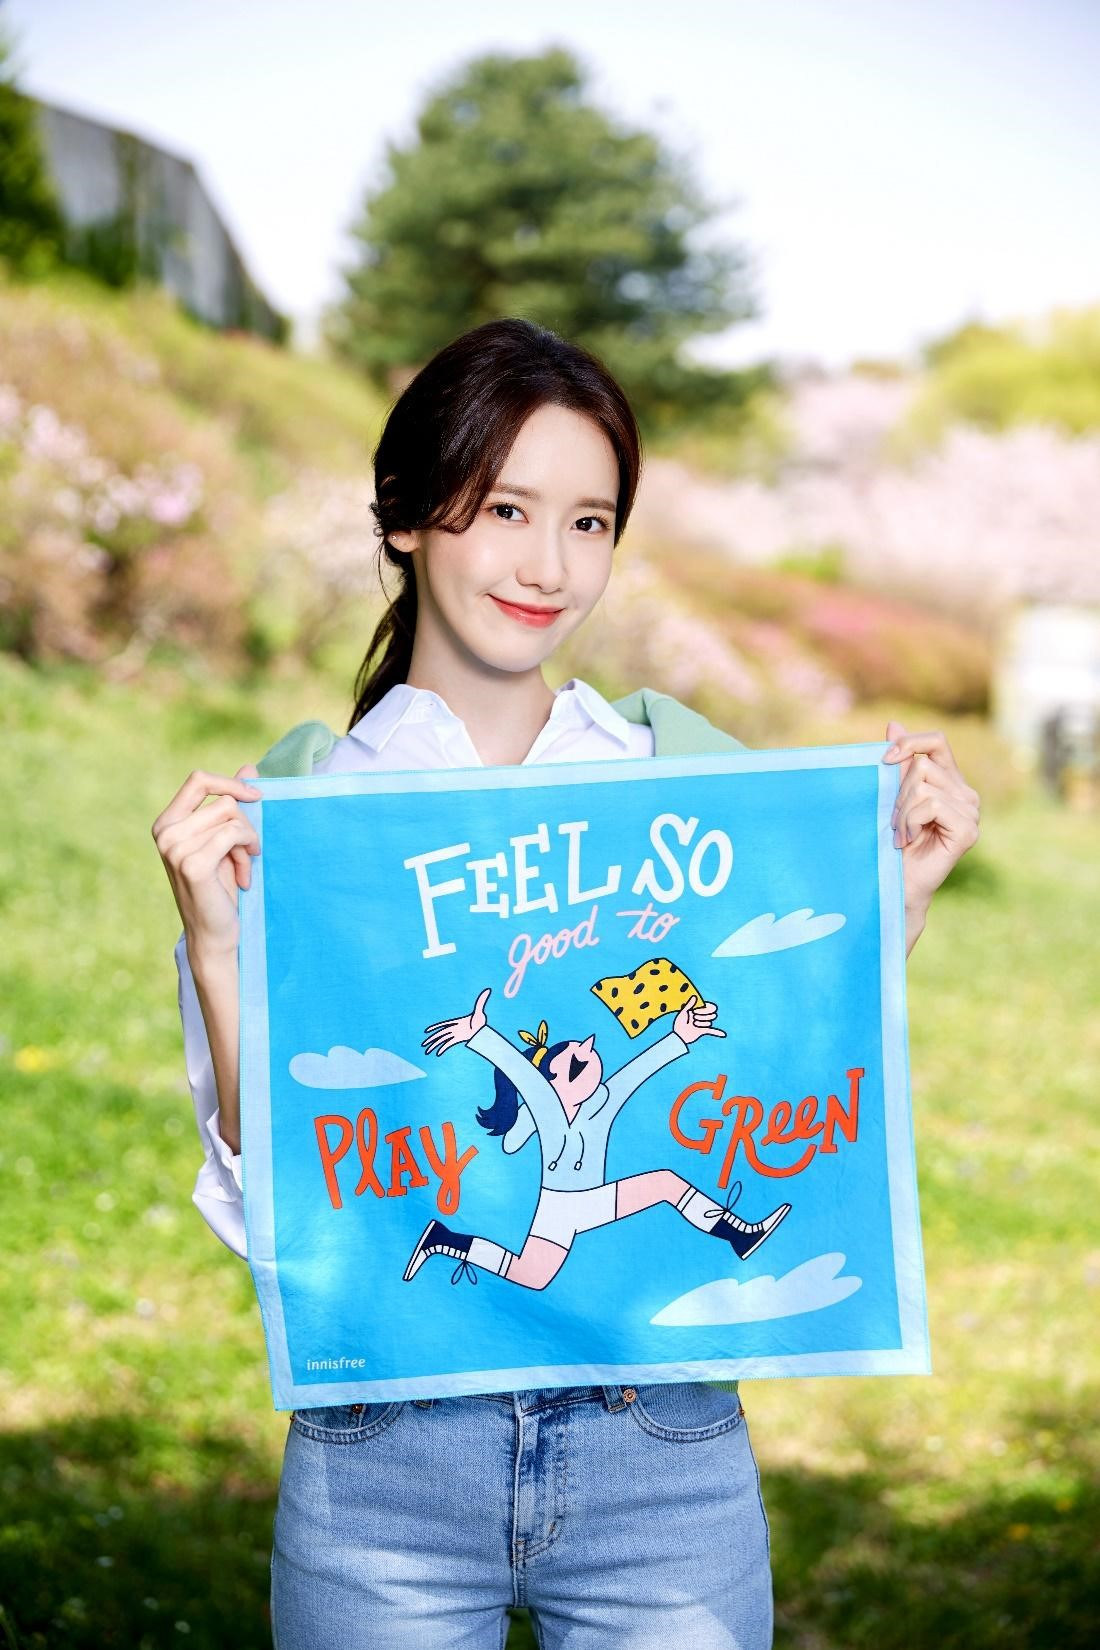 yoona trong chiến dịch eco hankie của innisfree 2019